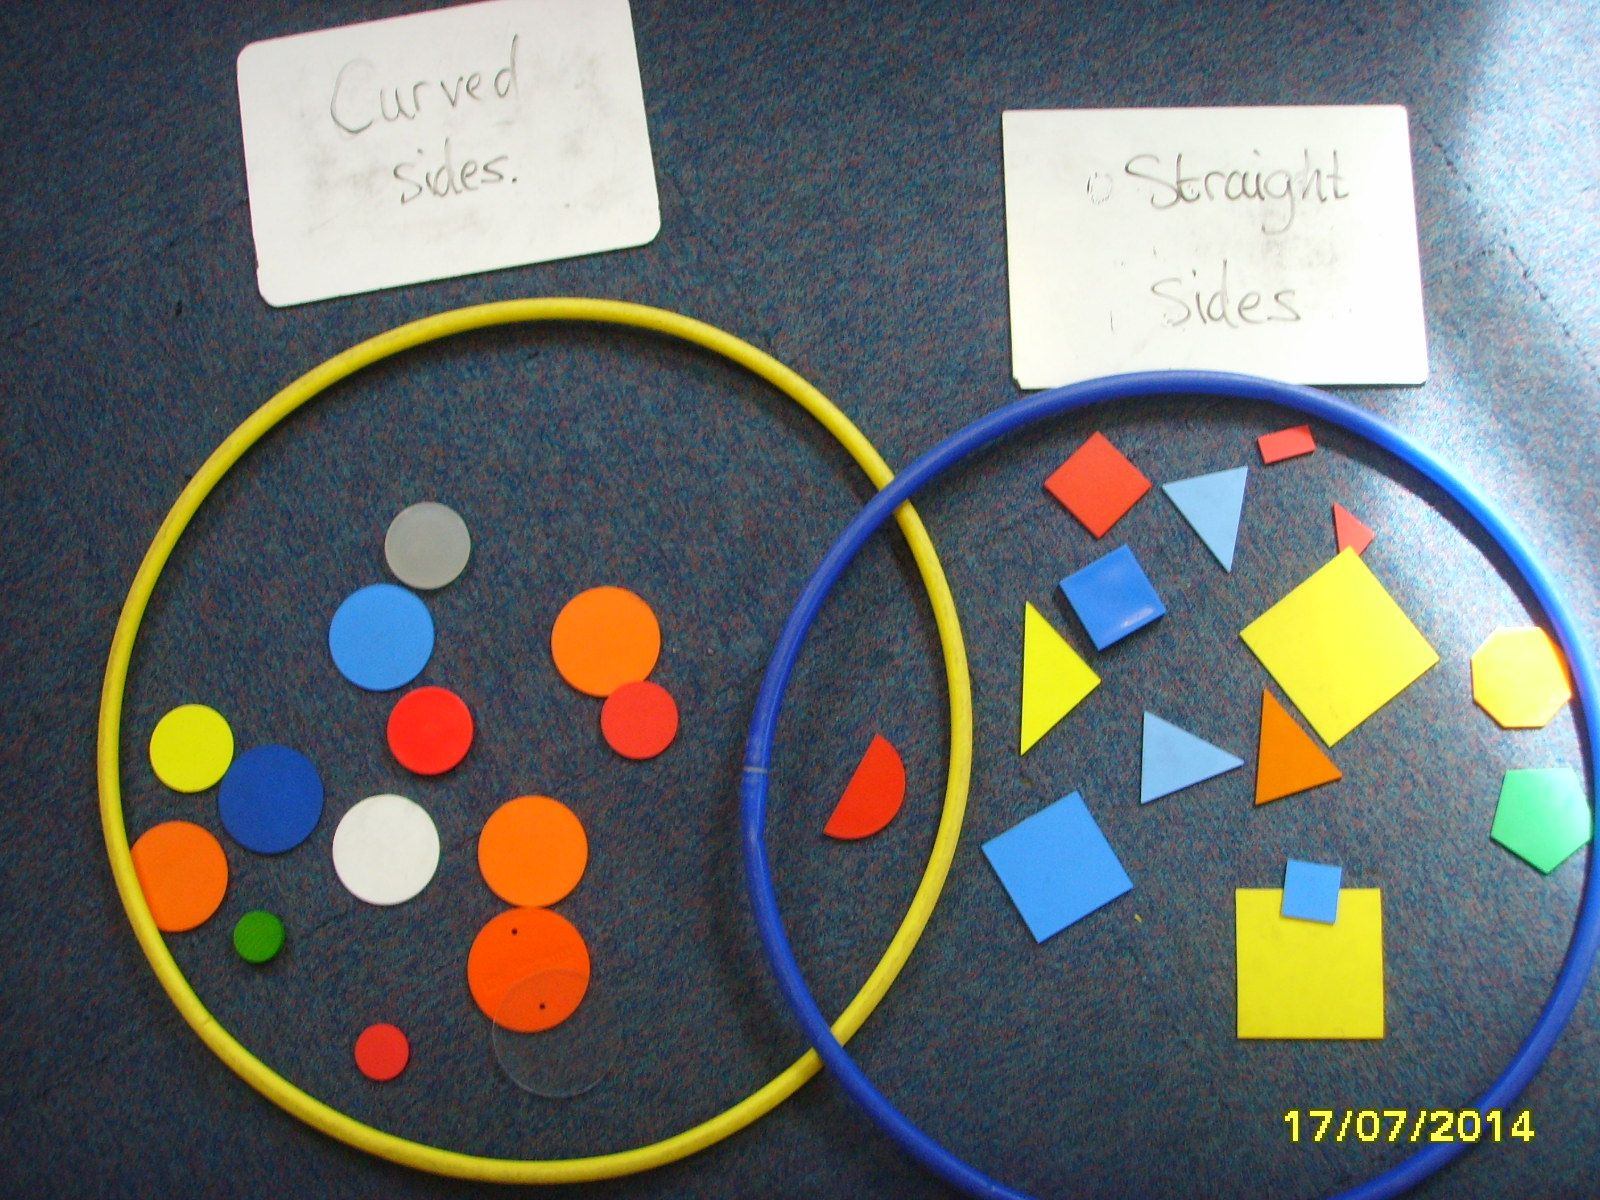 Sorting shapes venn diagrams math and math notes we have been learning about shapes in our maths lessons today we worked out how to use a venn diagram to sort shapes according to their properties pooptronica Images